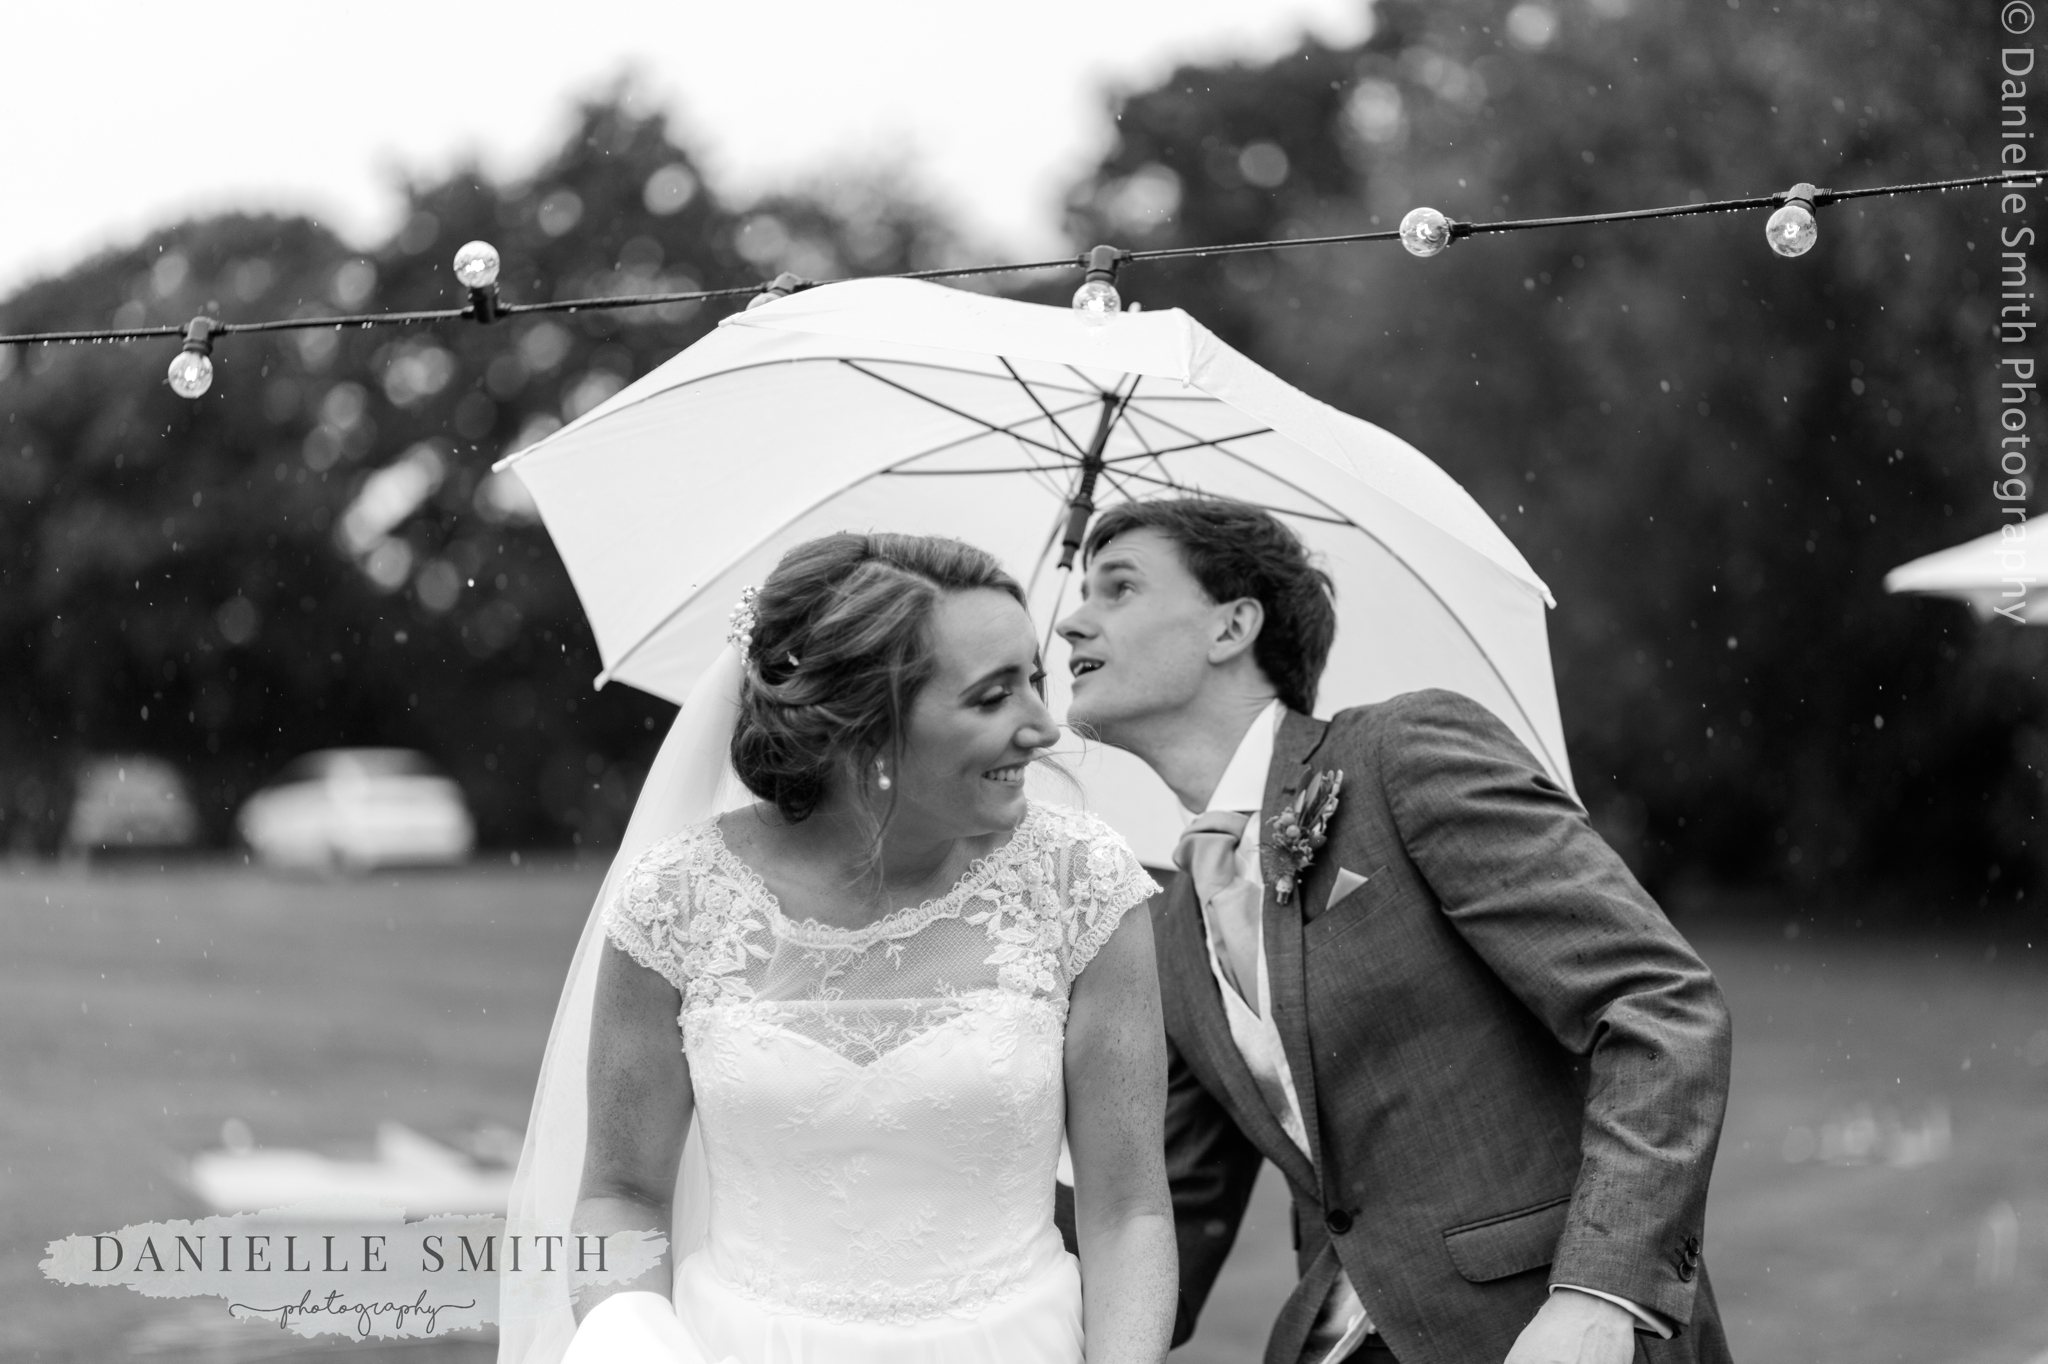 bride and groom ducking under lights with umbrella